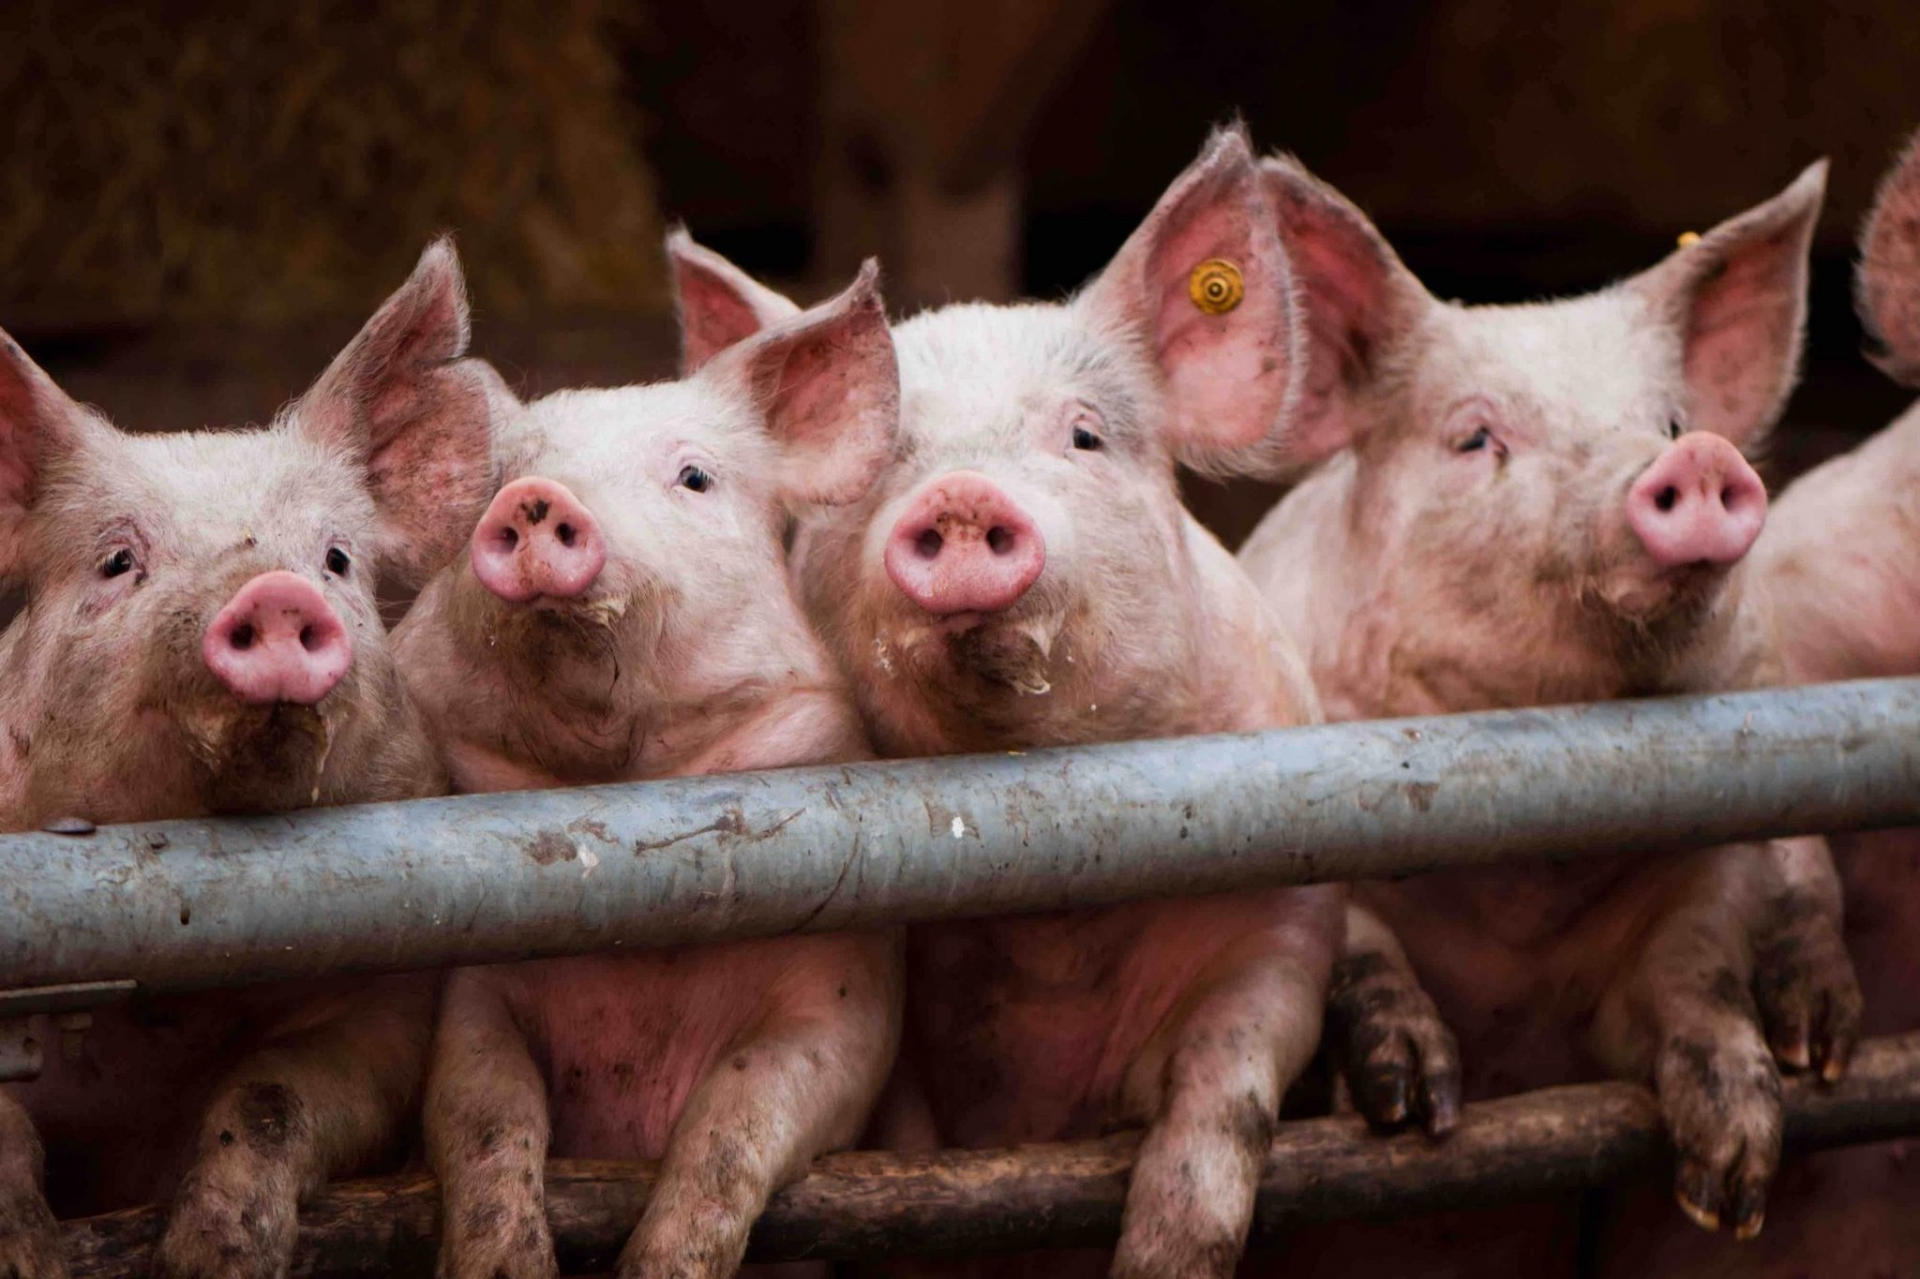 Live hog price today October 13: Reduce floor collapse, peaking at 6,000 VND/kg 3